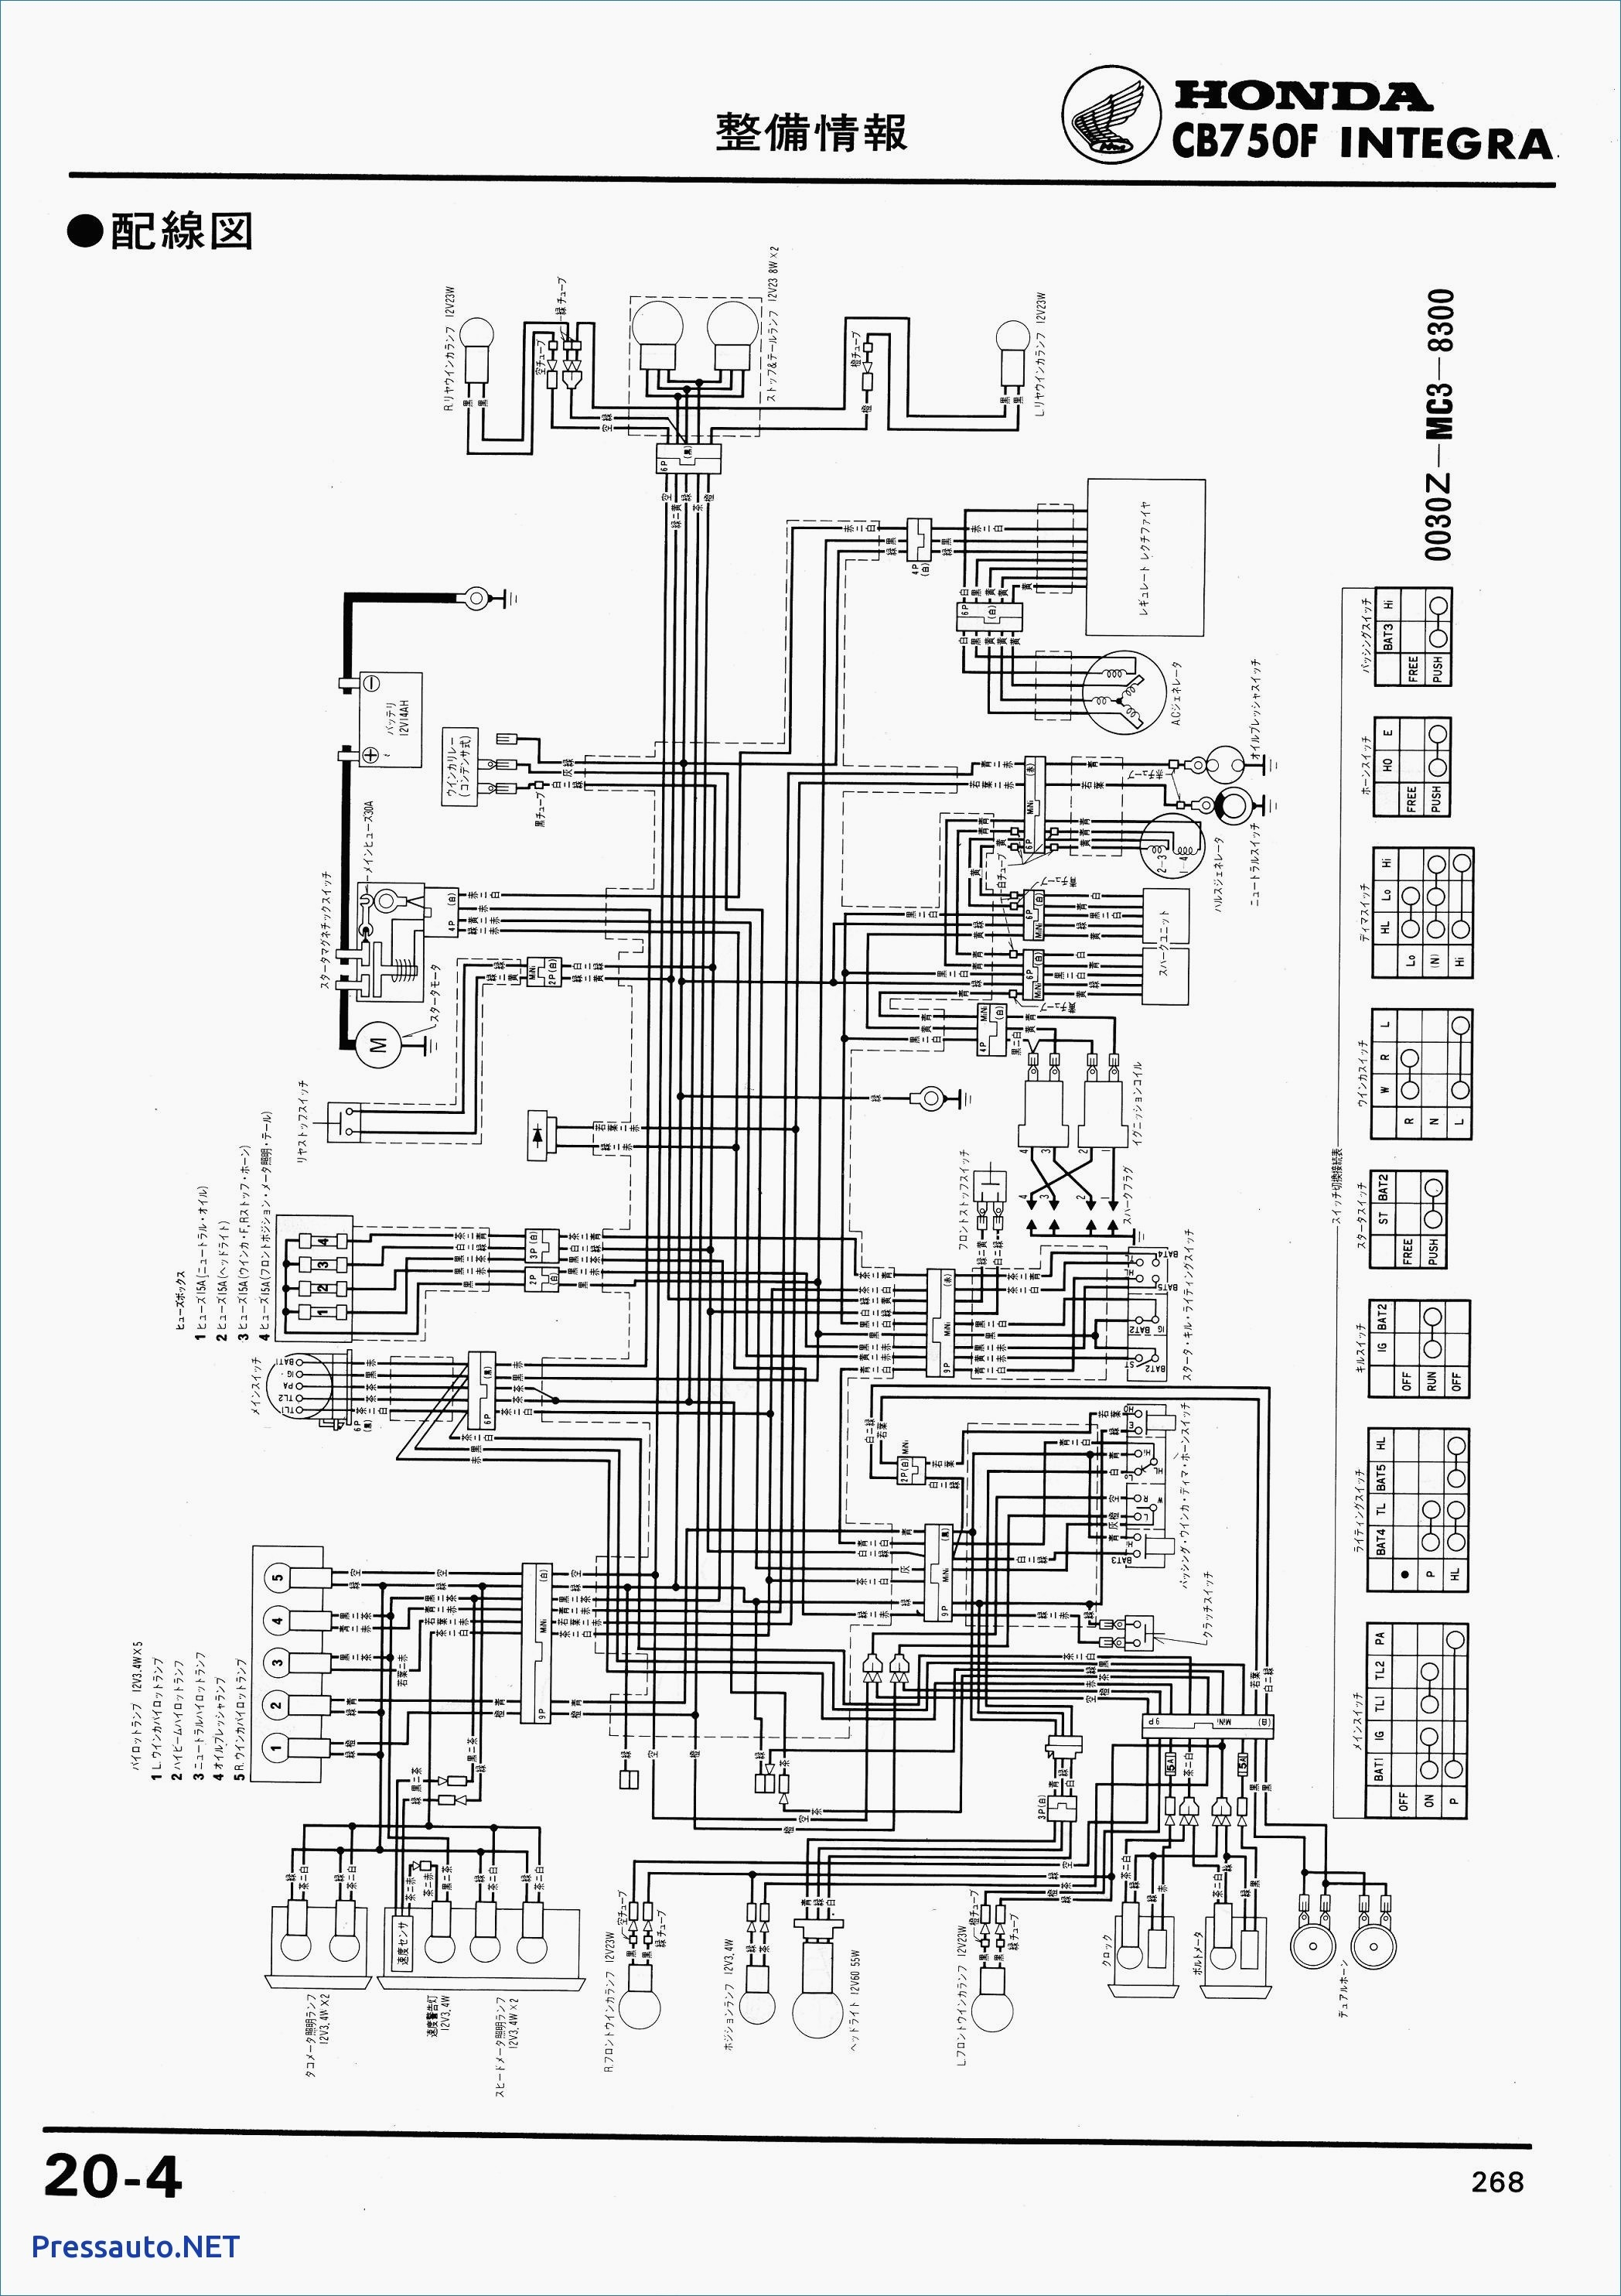 Honda Bf 50 Wiring Diagram. . Wiring Diagram on